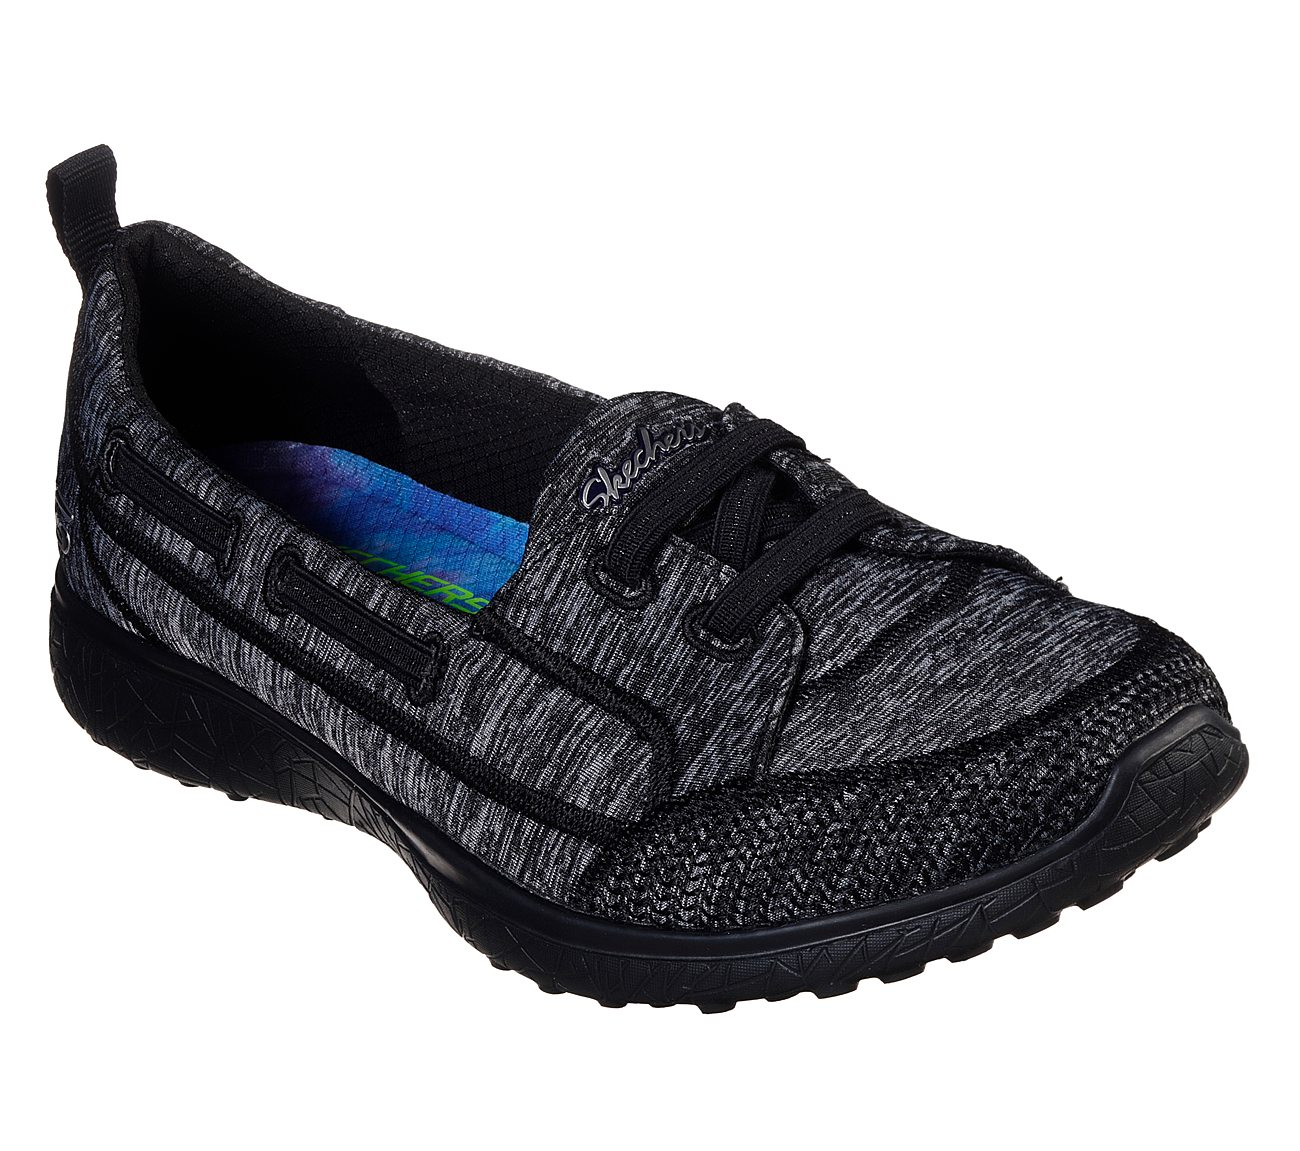 Skechers Microburst Topnotch Shoe